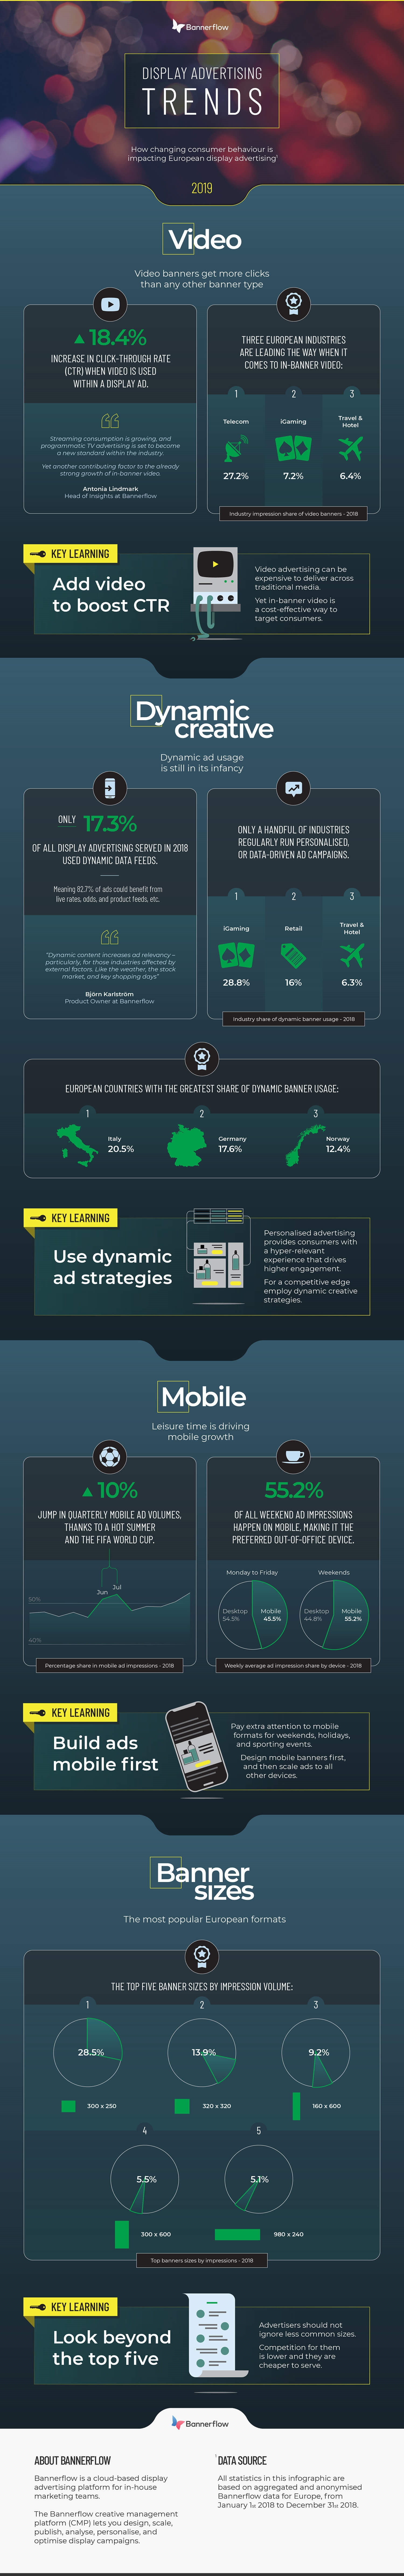 The Display Advertising Trends of 2019 [Infographic]   DeviceDaily.com